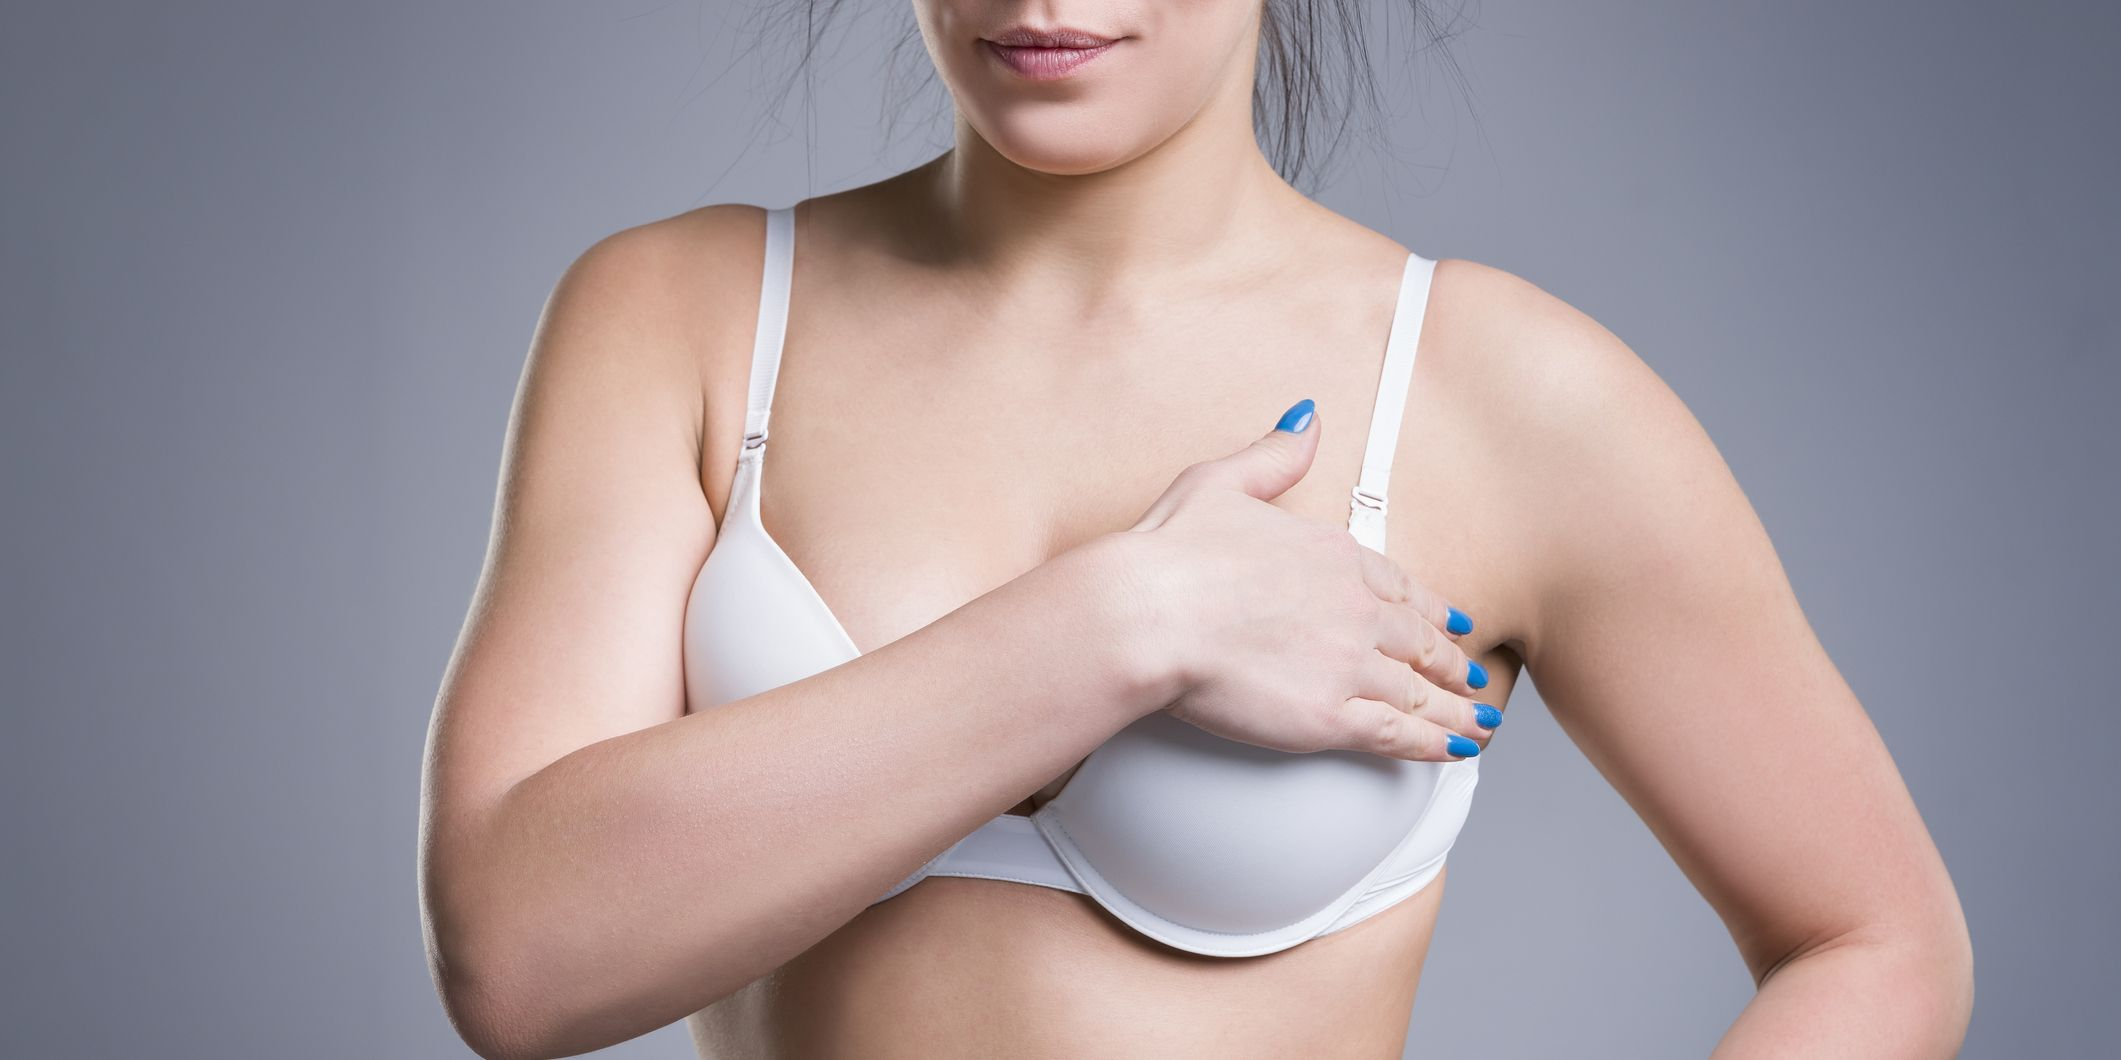 Woman in white push up bra on gray background, female breast